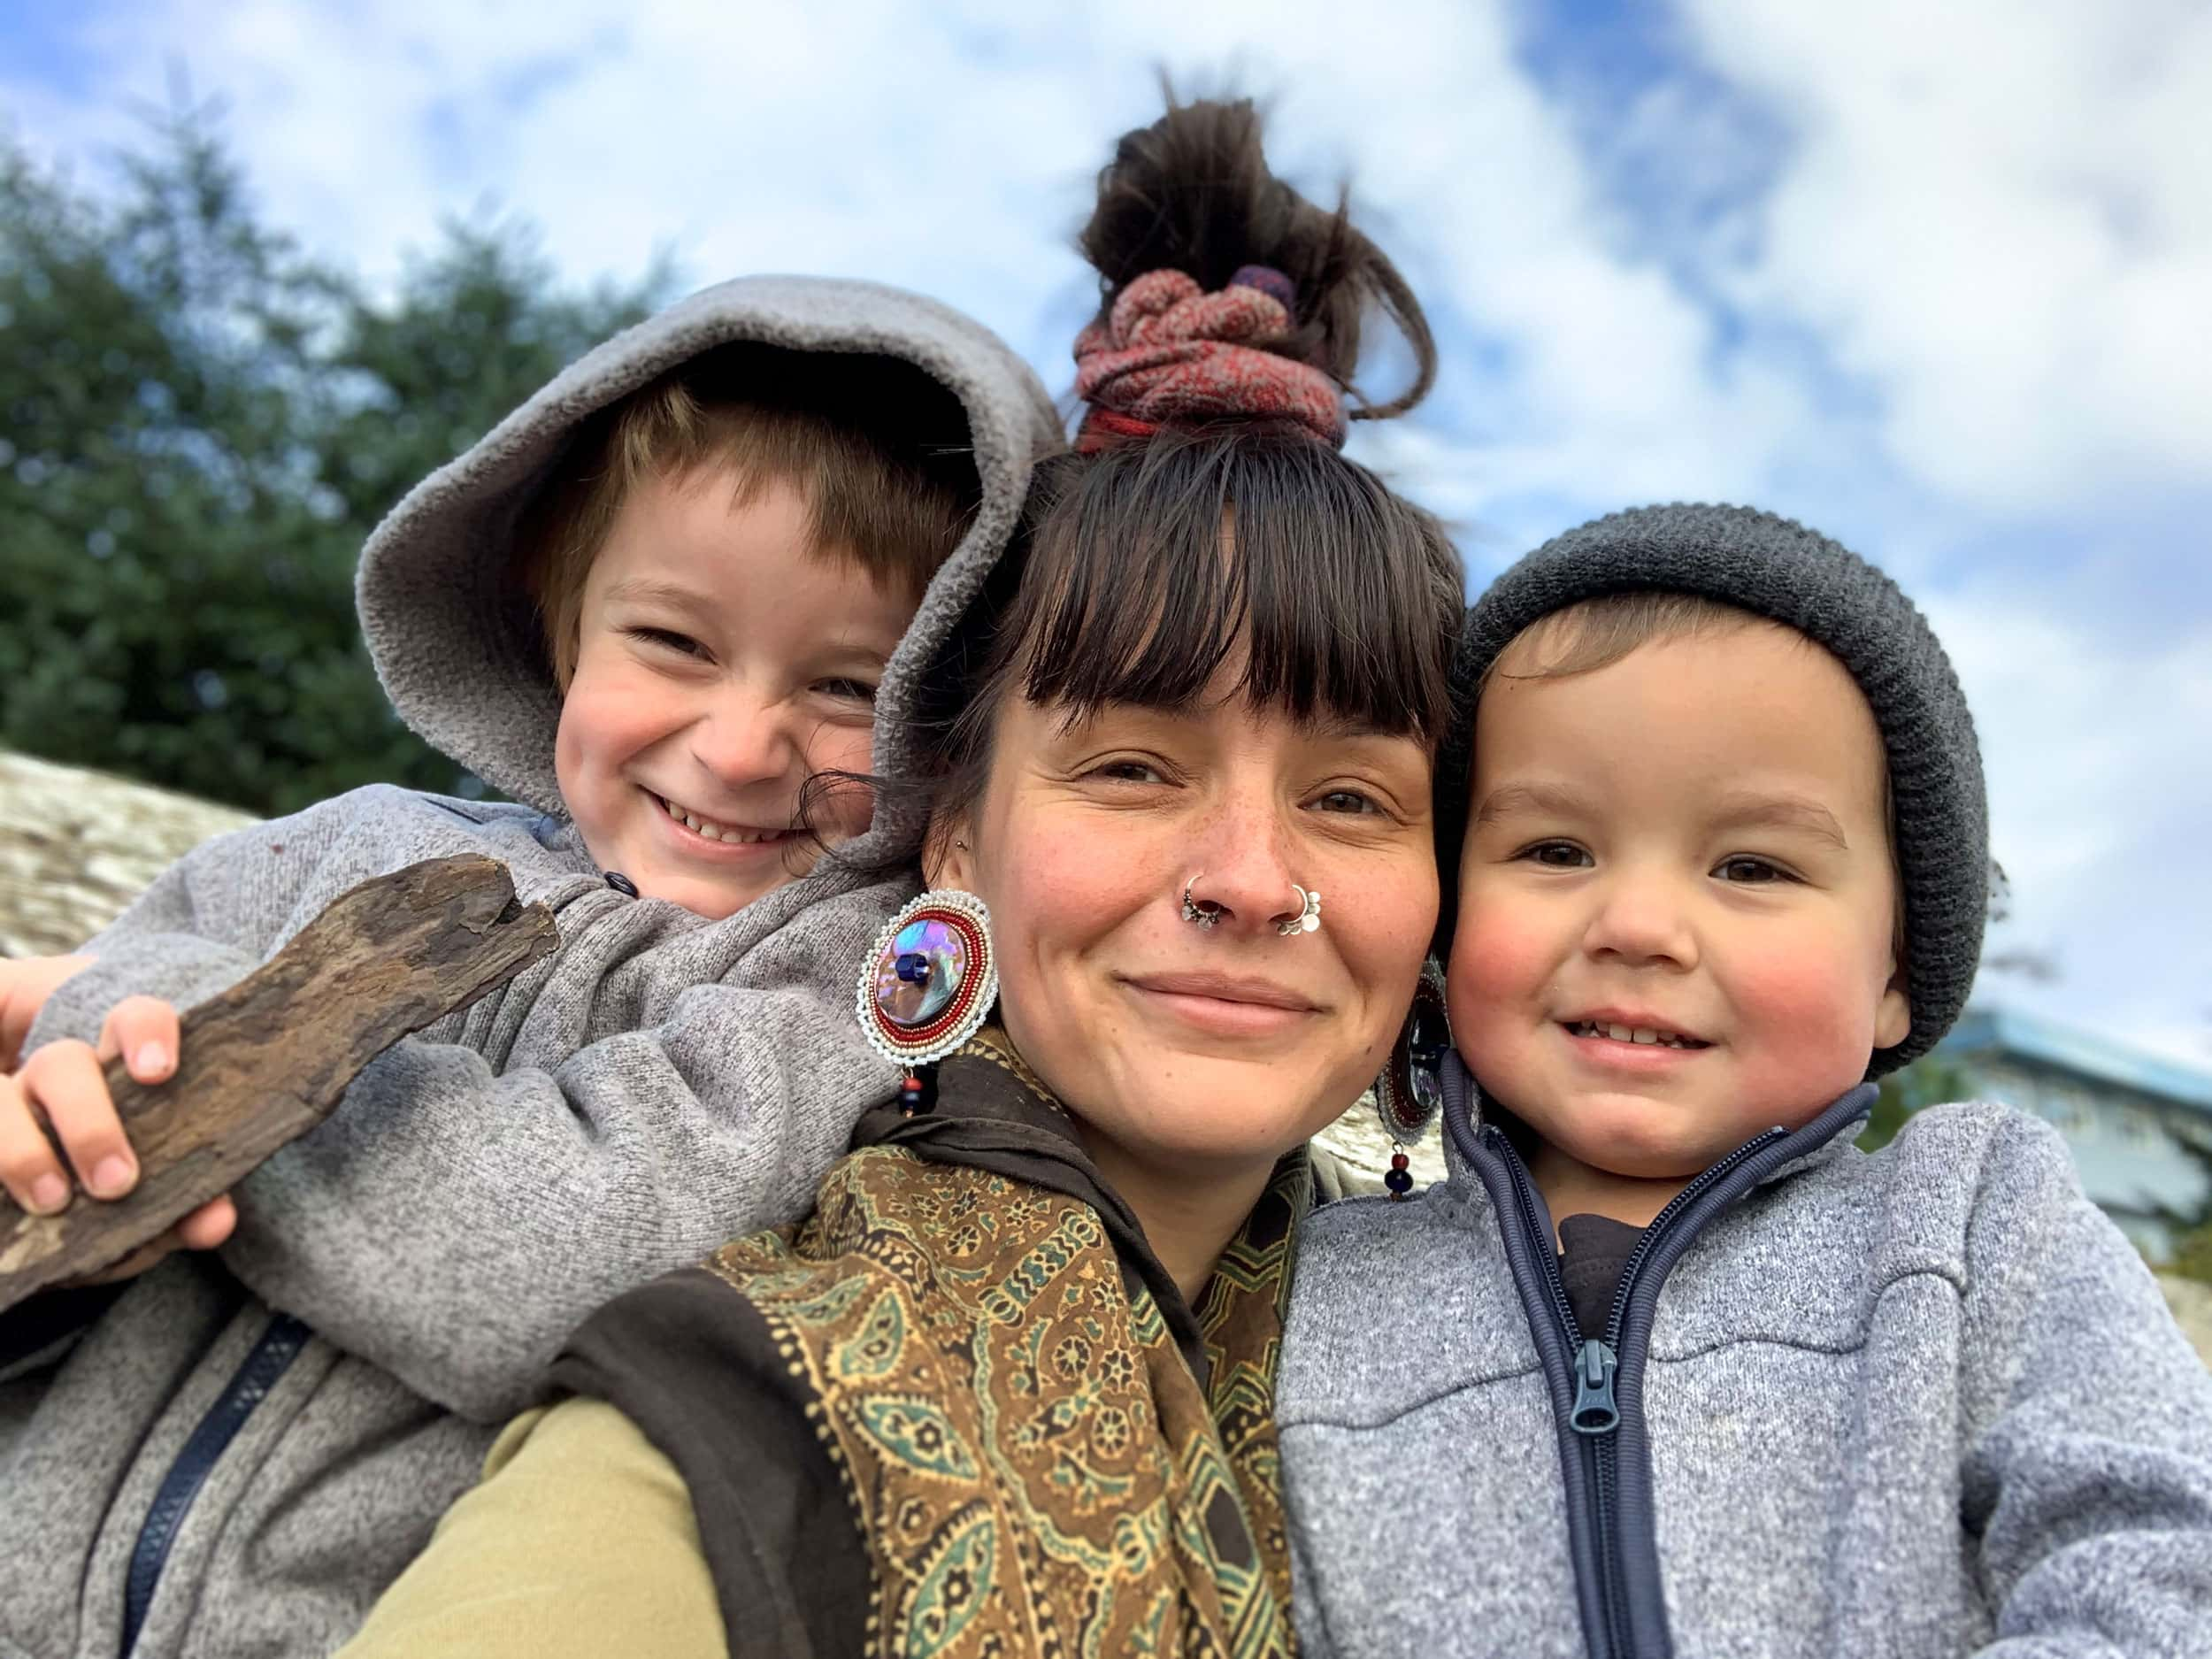 'Cúagilákv (Jess Housty) with her sons, Noen and Magnus